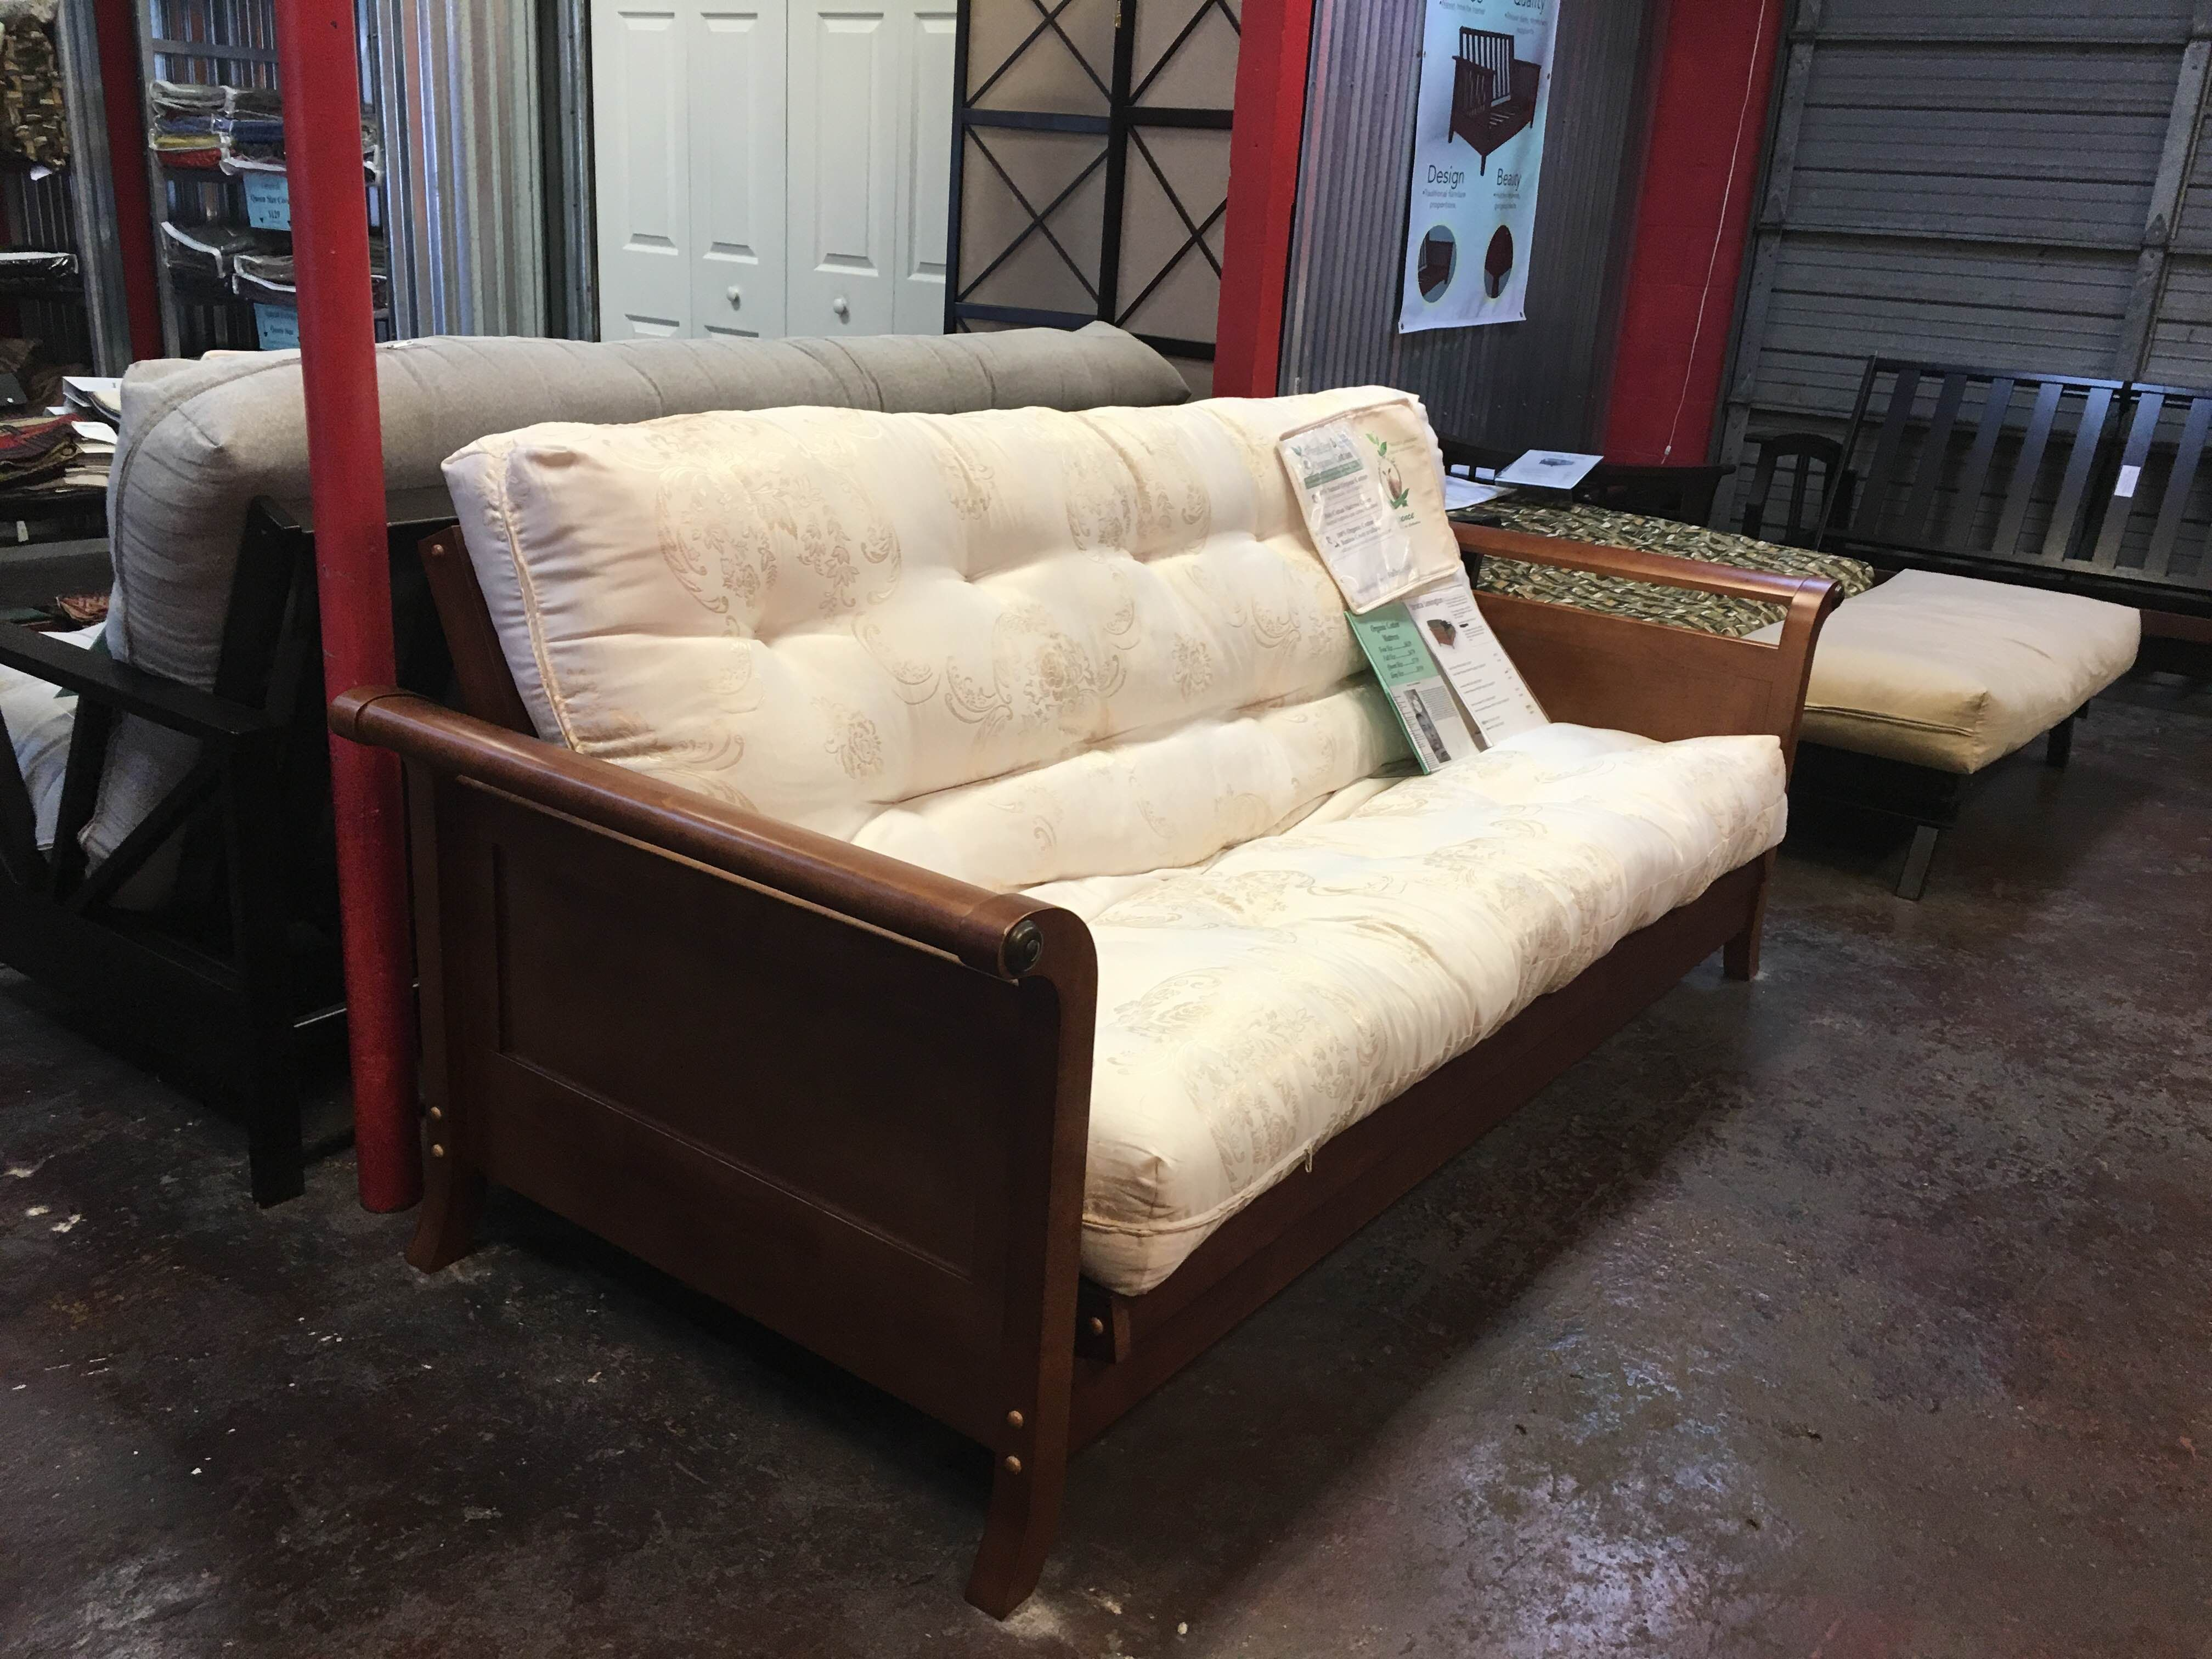 Here is another pic of the futon called the Strata Lexington in